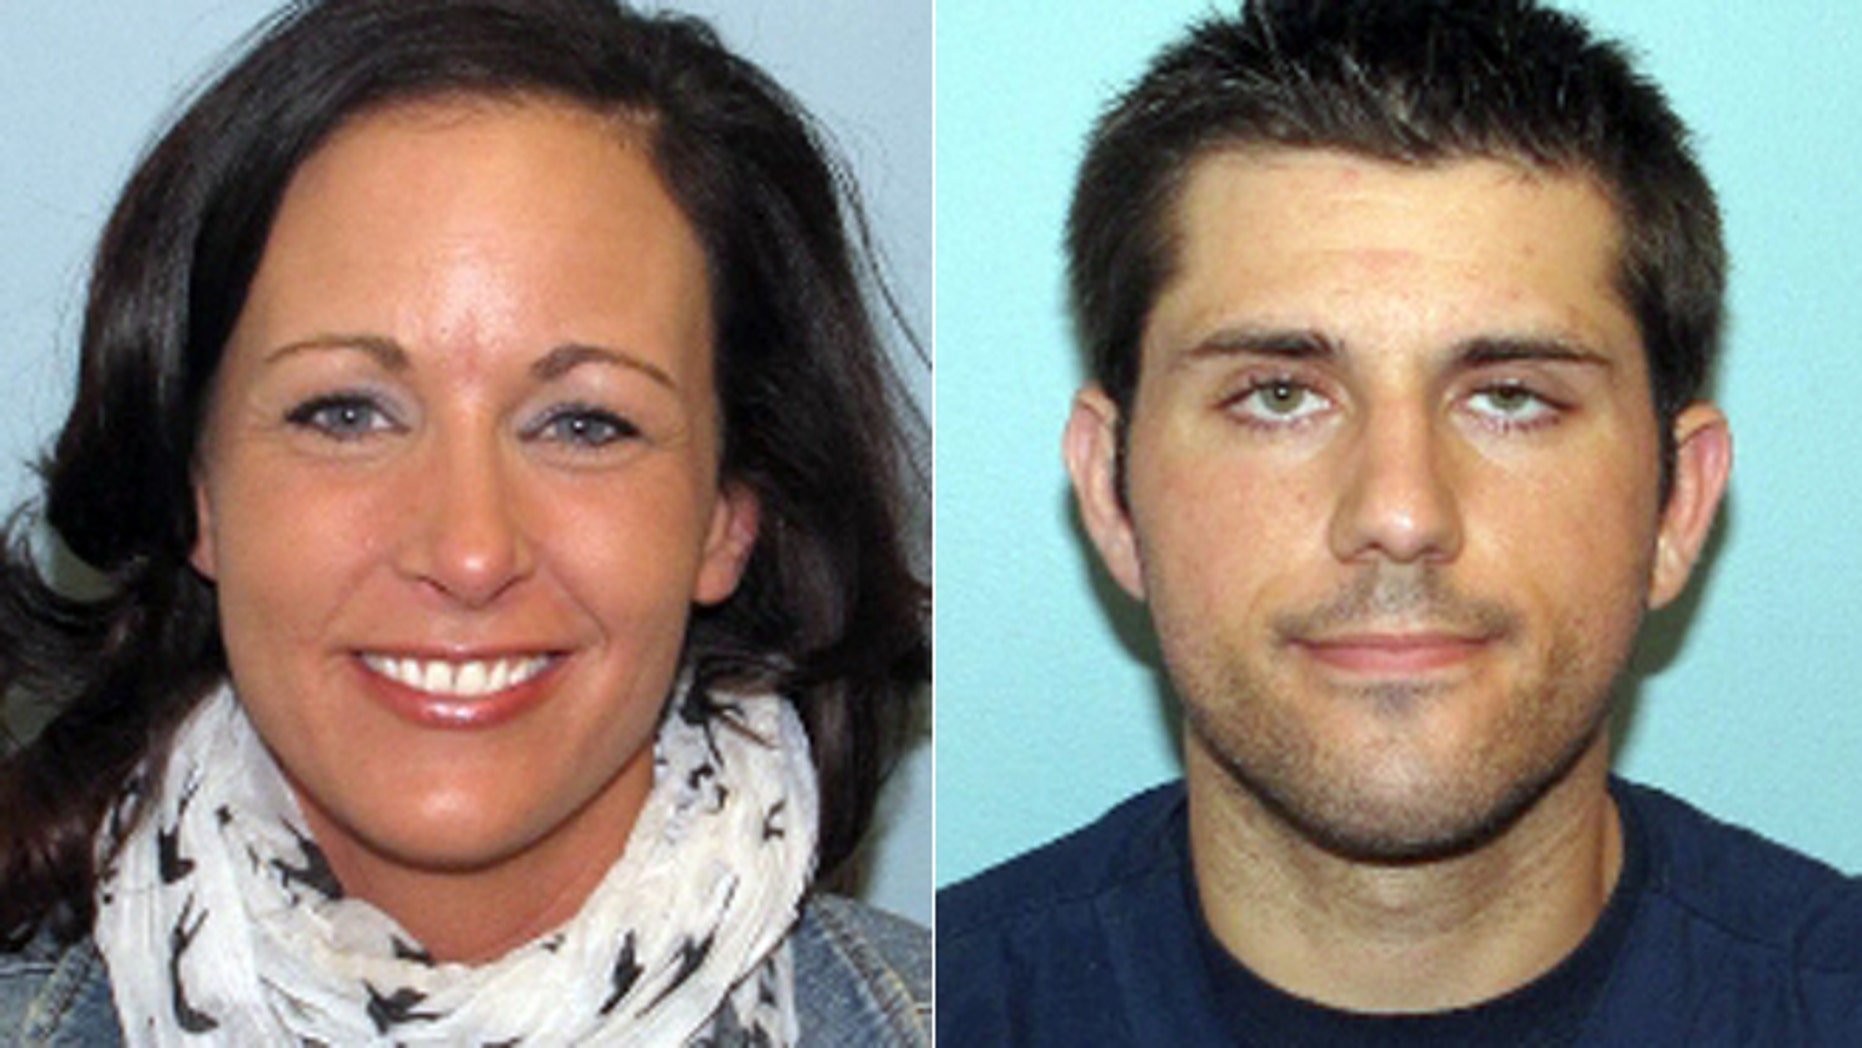 Police have issued an arrest warrant for Nathan Summerfield after Lynn Jackenheimer  was found dead in North Carolina's Outer Banks.